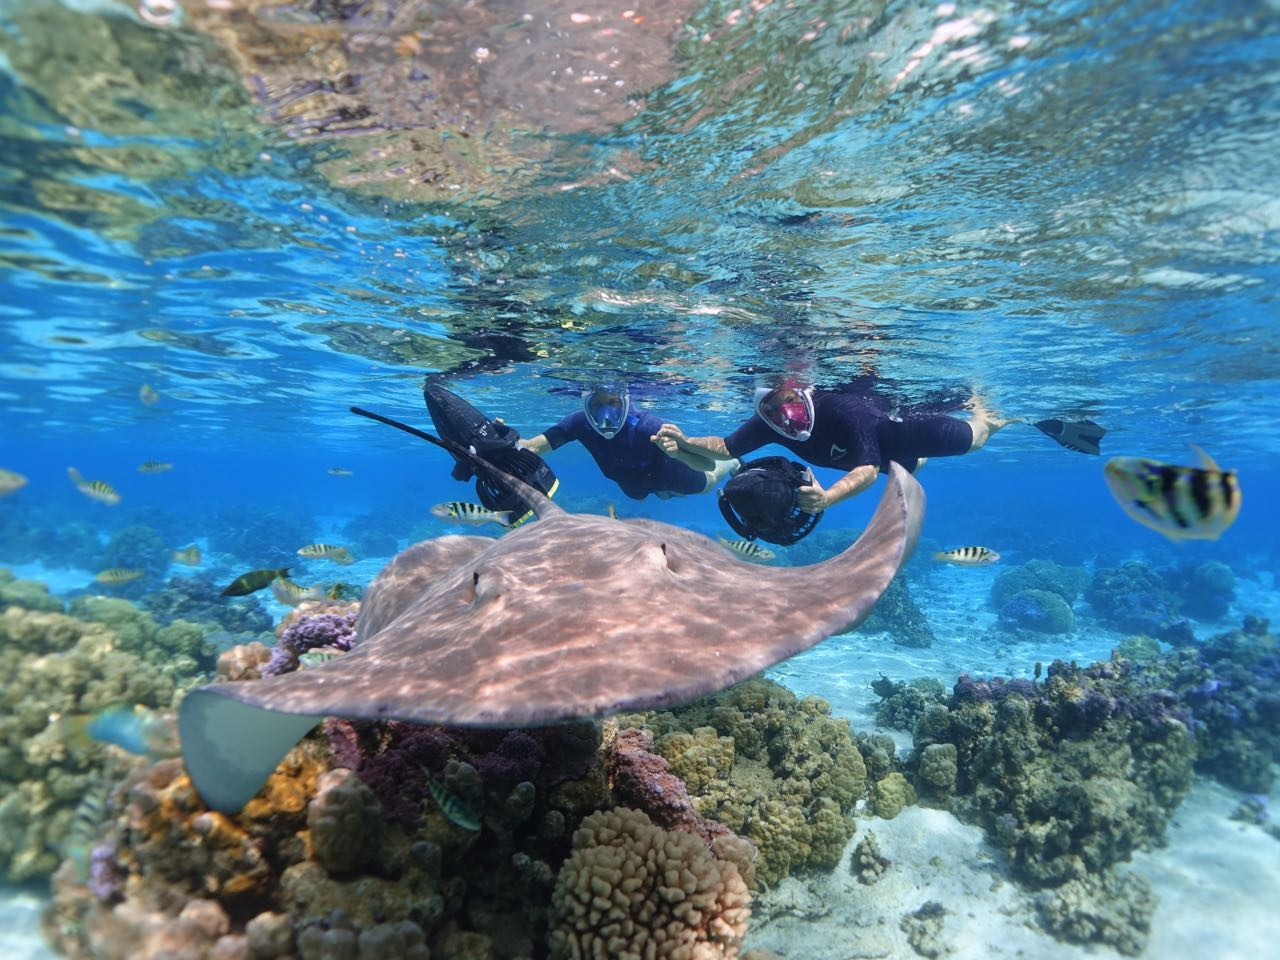 https://tahititourisme.ca/wp-content/uploads/2020/09/Sea-Scooter-Snorkeling-Tour-à-moorea-copie-2.jpg